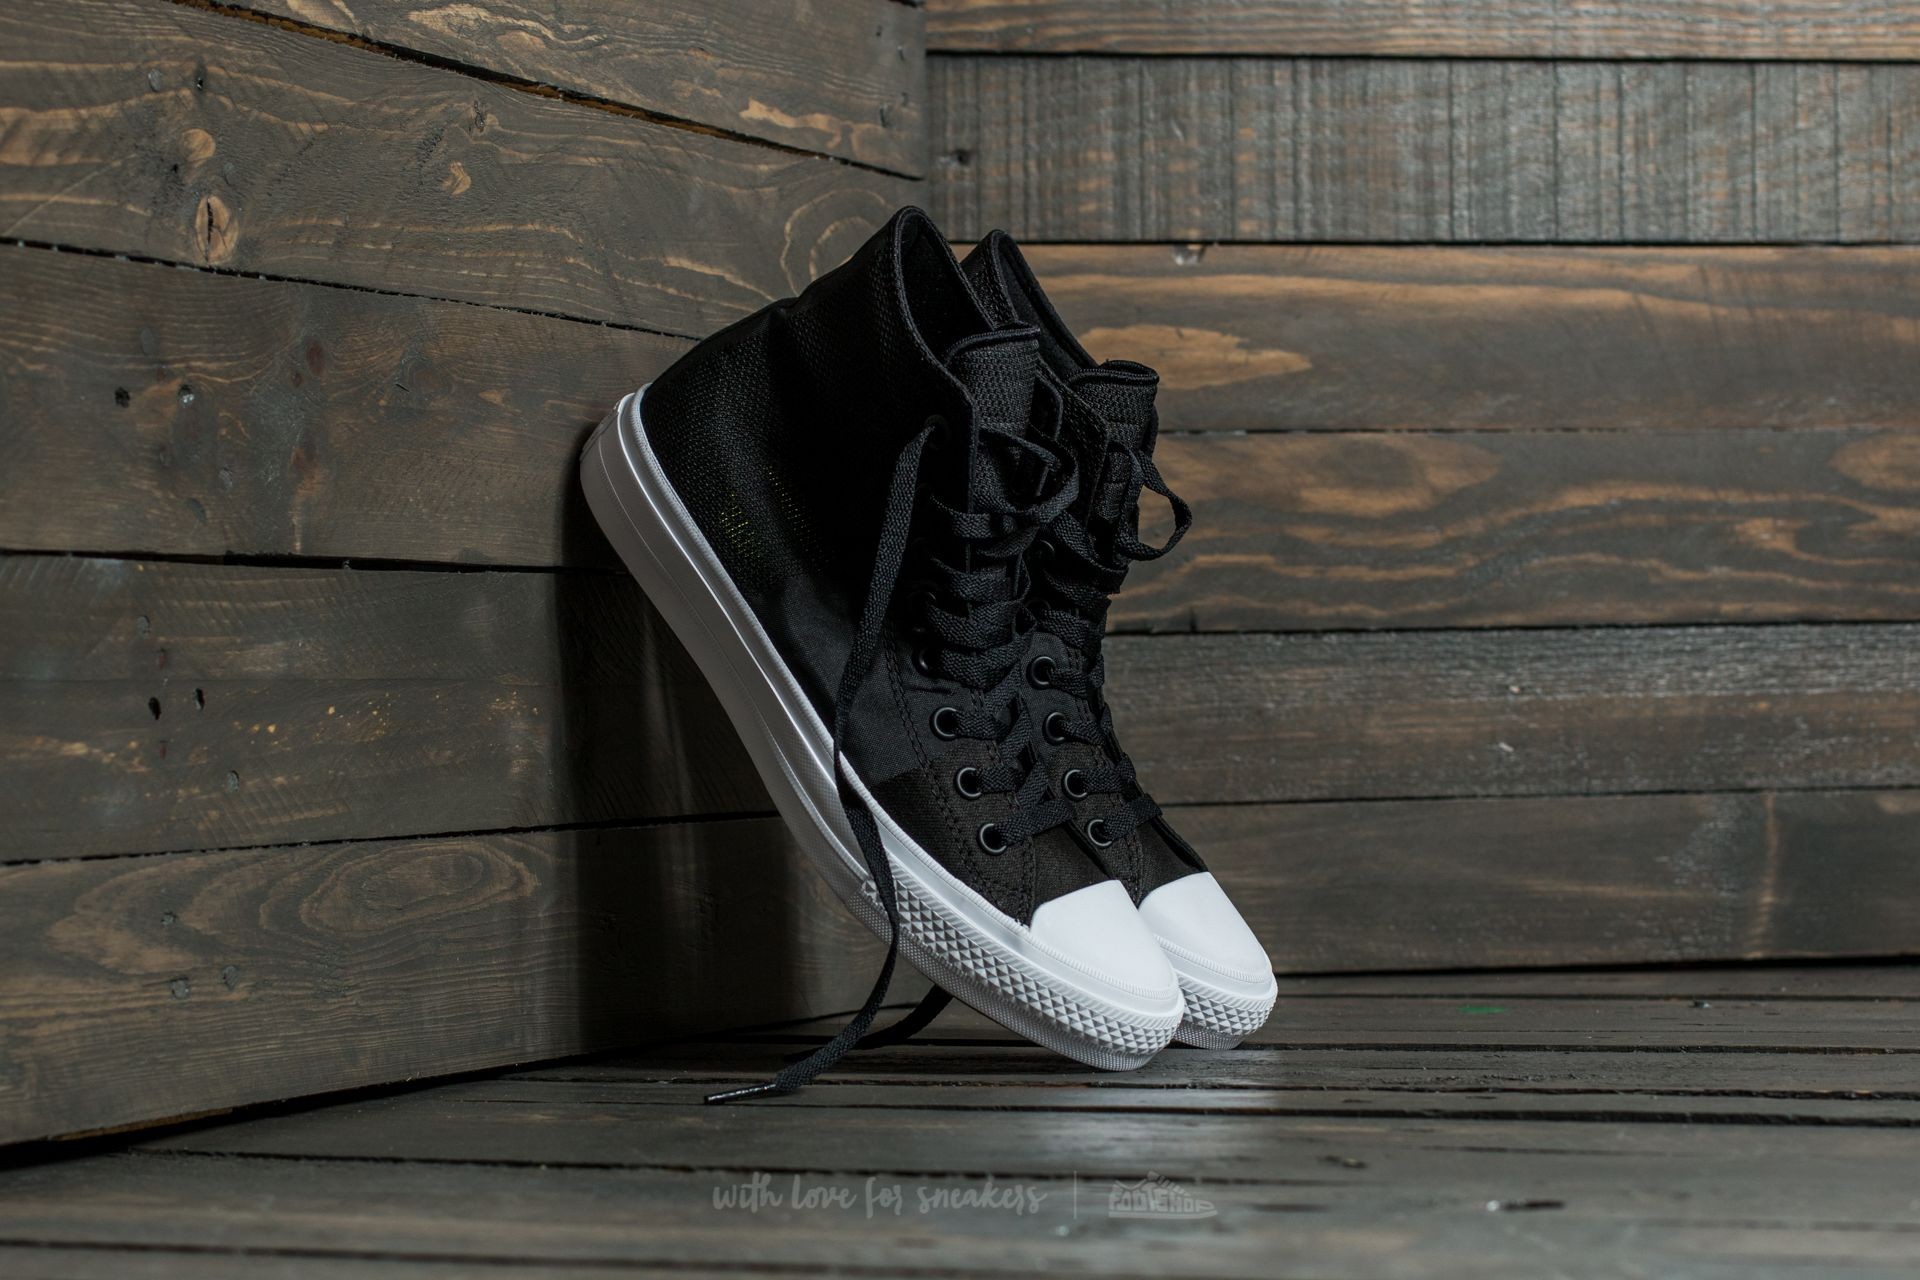 b071c3c8acb19 Converse Chuck Taylor All Star II Hi Black  Storm Wind  White